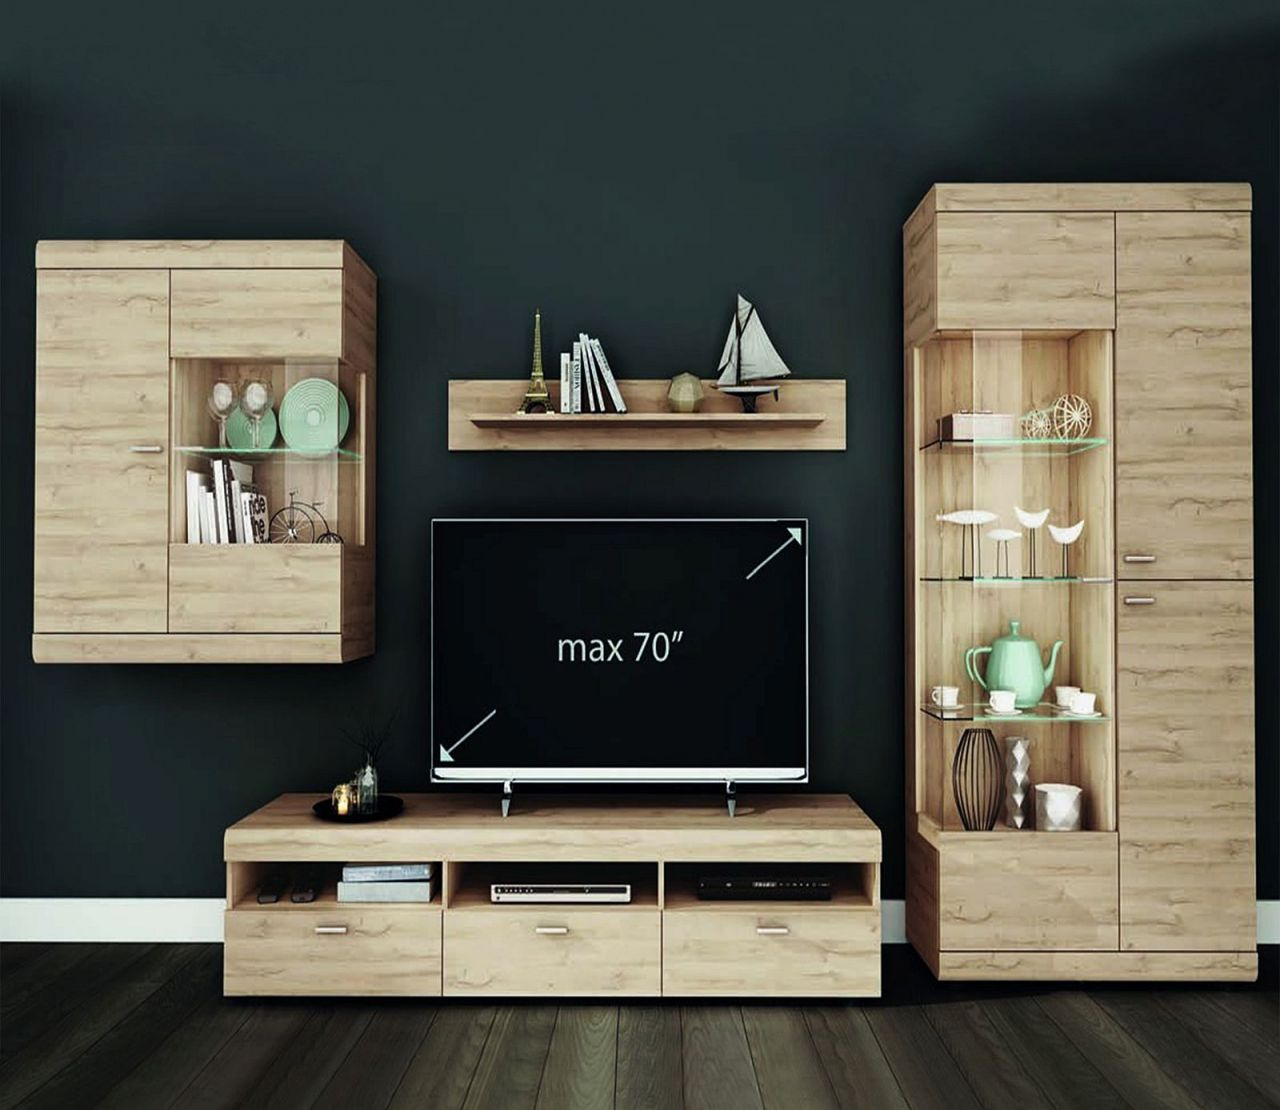 wohnwand led beleuchtung 2 farben hochglanz wei grandson oak eiche hell schrankwand f like. Black Bedroom Furniture Sets. Home Design Ideas